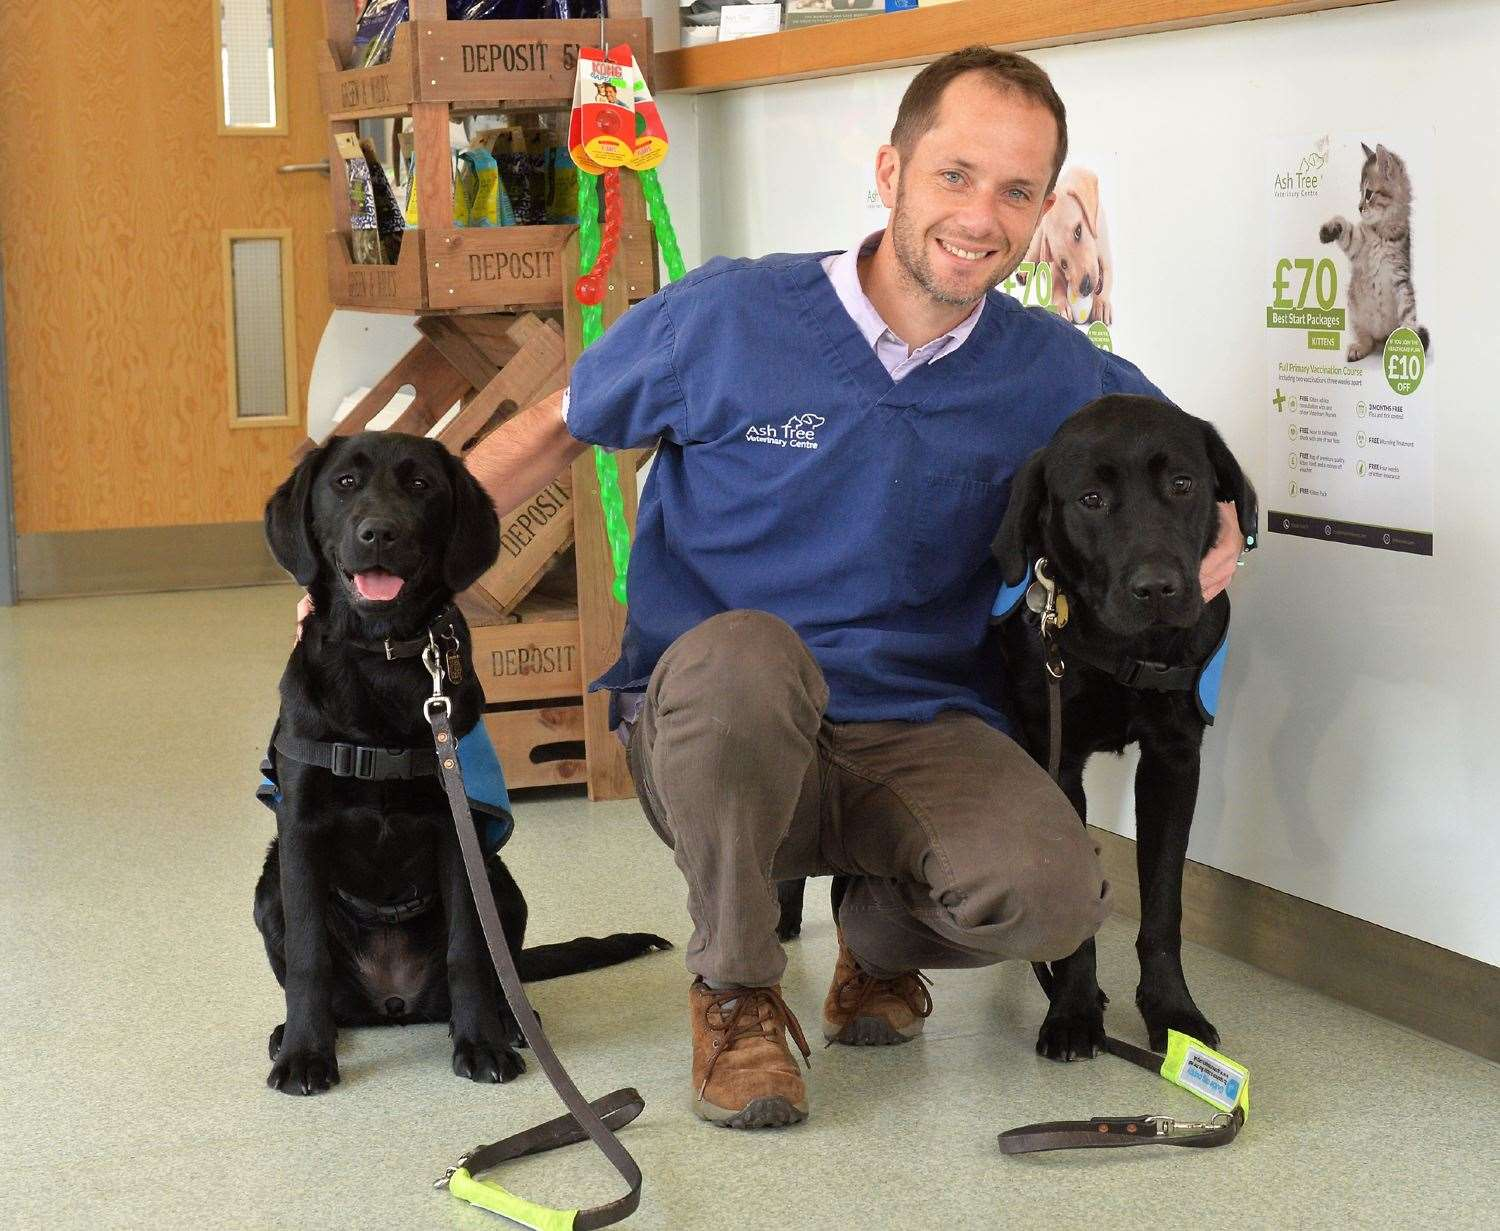 Ash Tree Vet Bill Besley with guide dogs in training Cathy and Quince (8619689)